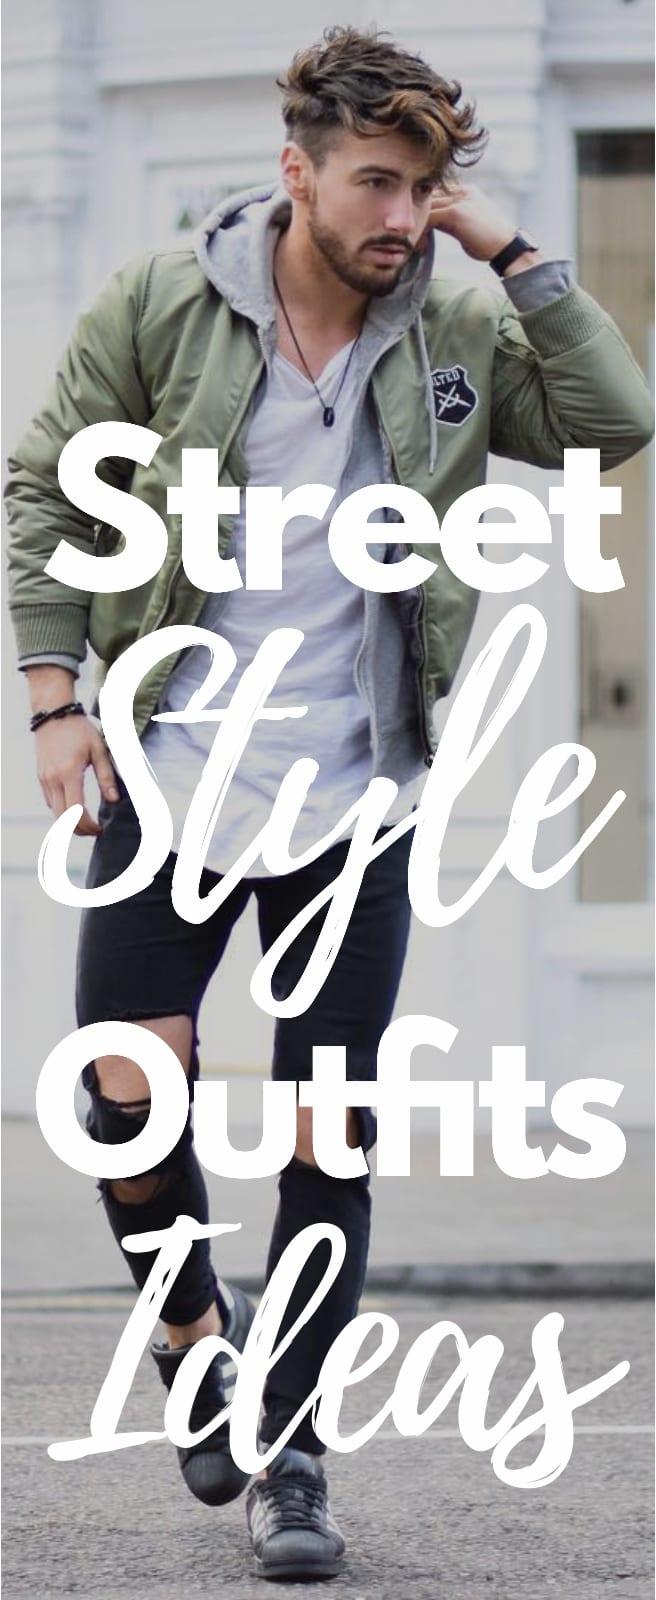 10 Stunning Looks For Men To Ace The Street Style